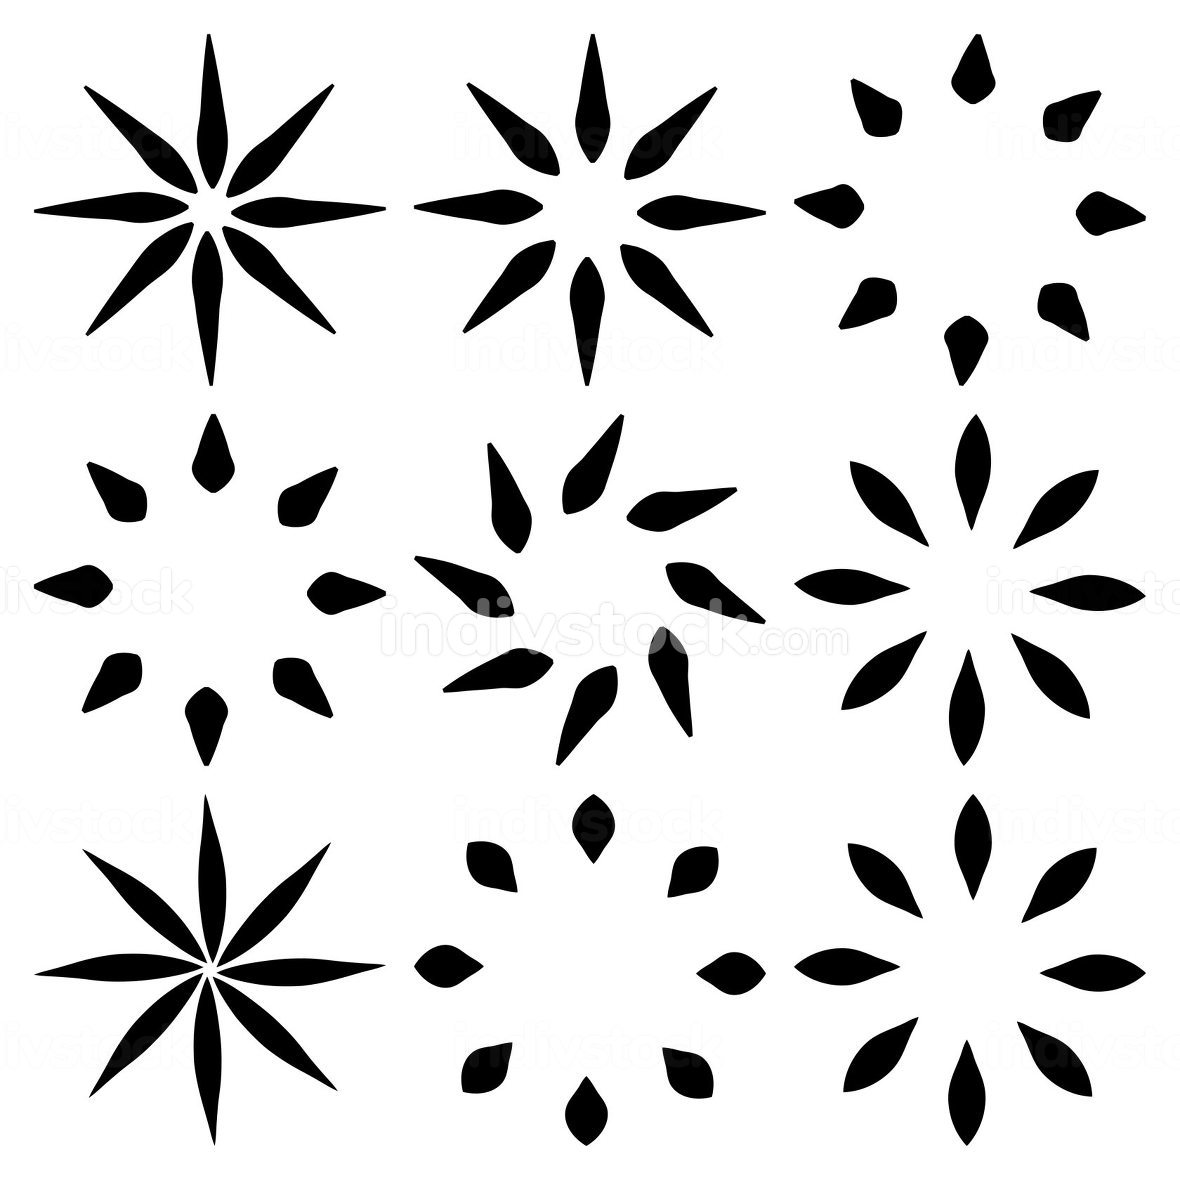 Geometric flower or leaf icon set. Black abstract simple concent